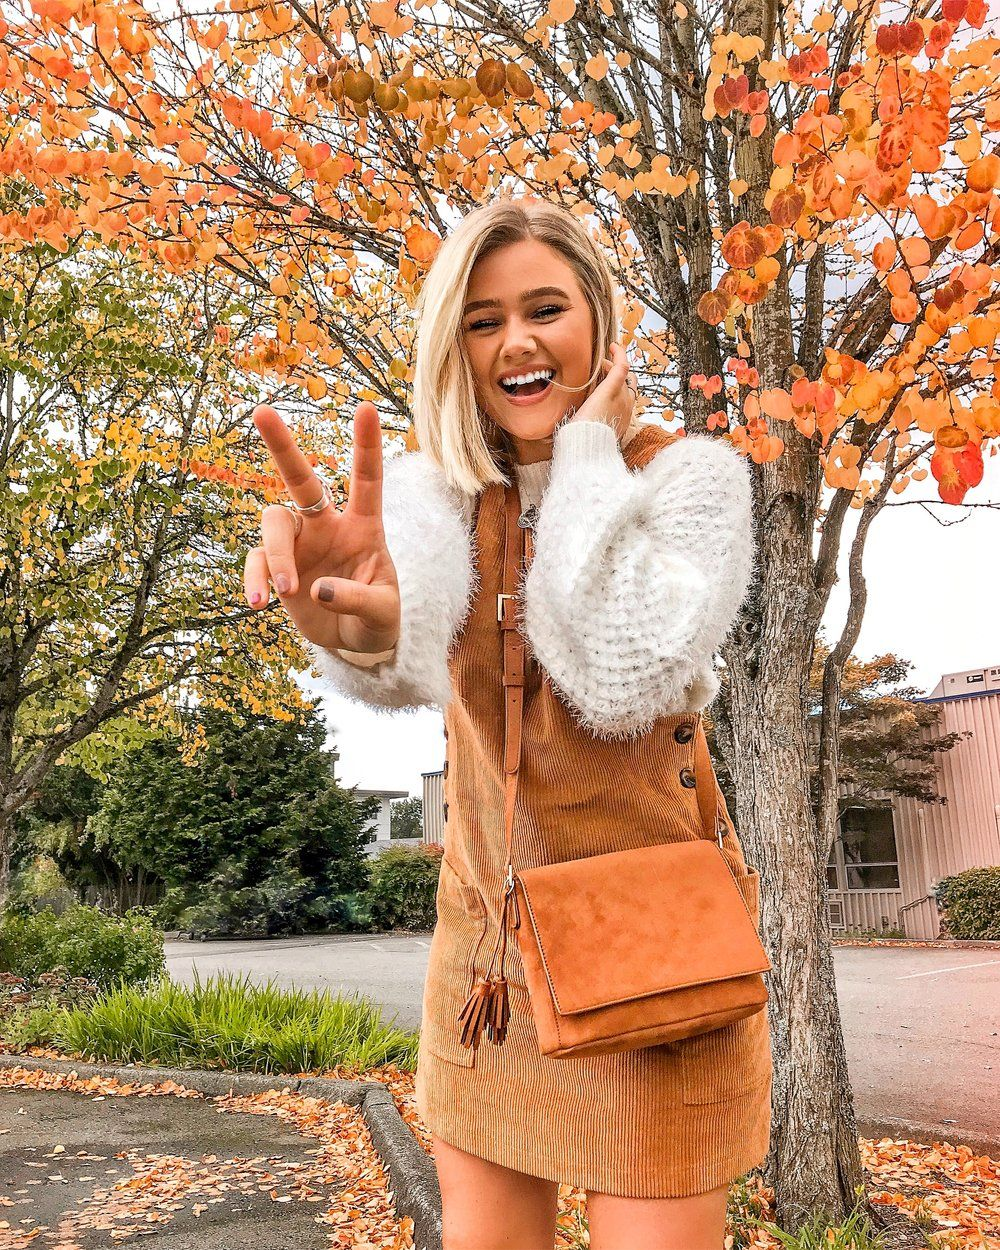 Bre Sheppard / Fall Inspo (With images) | Fall photoshoot ...